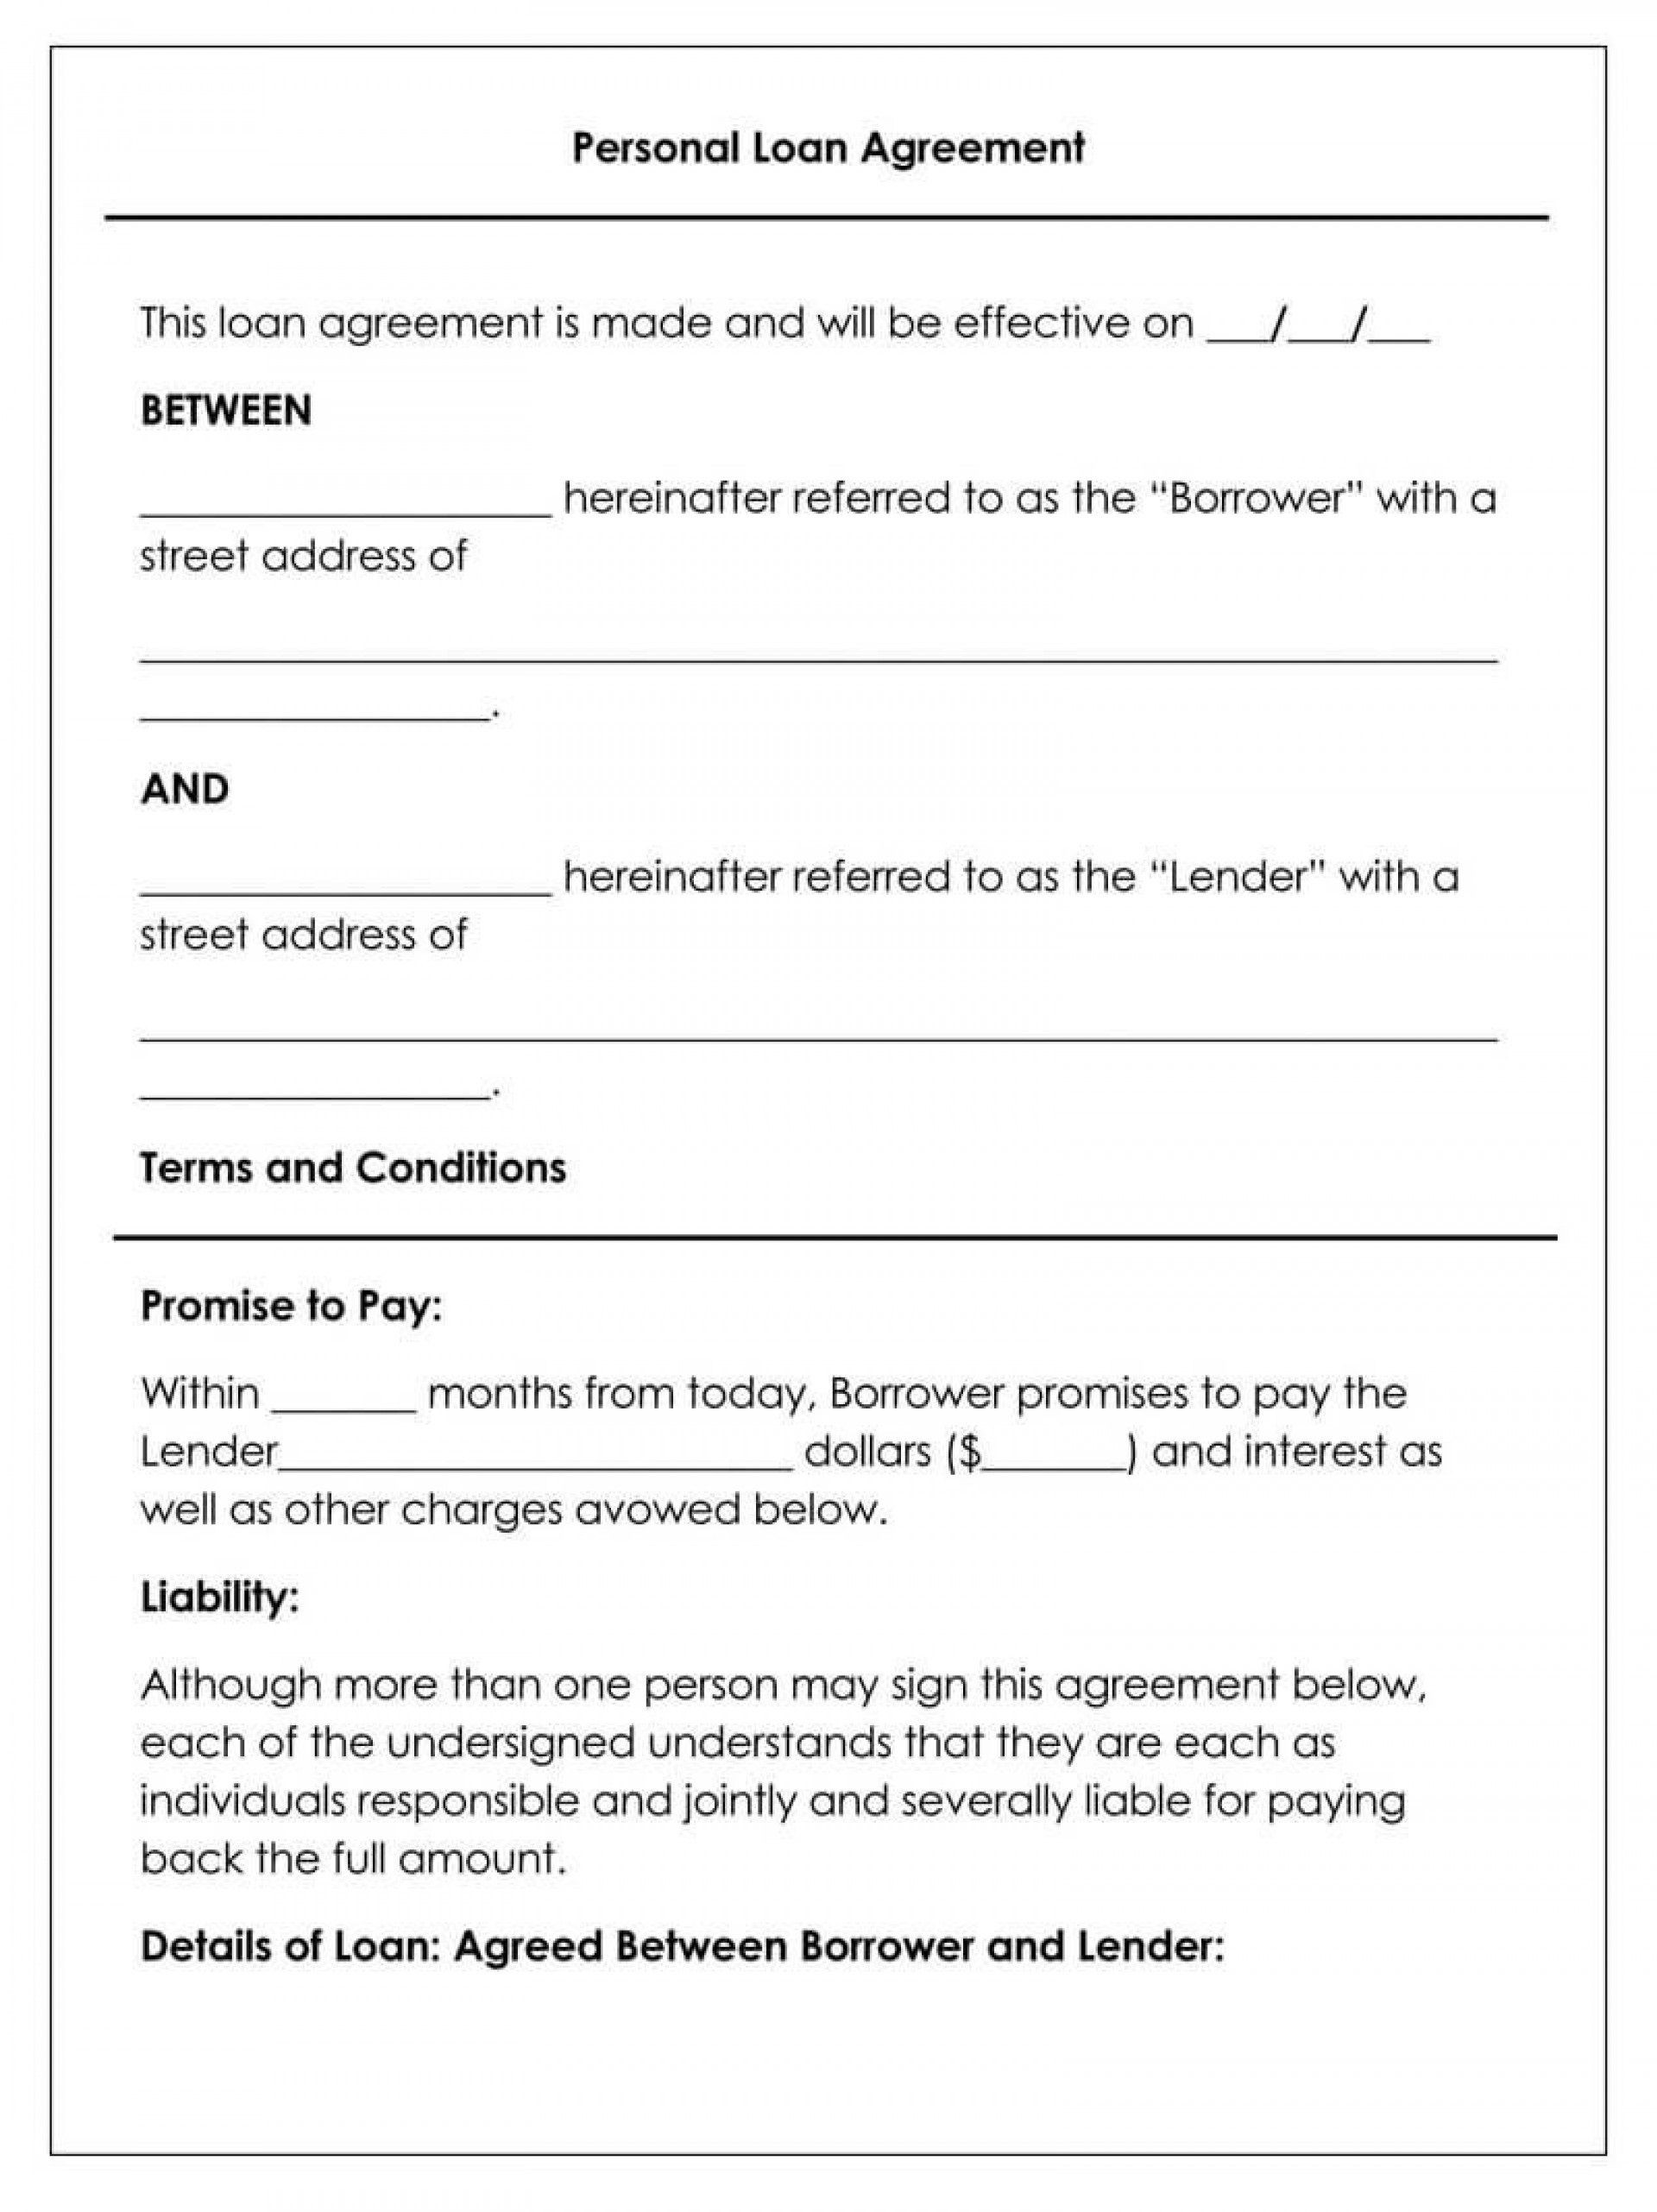 004 Amazing Simple Family Loan Agreement Template Australia Sample 1920